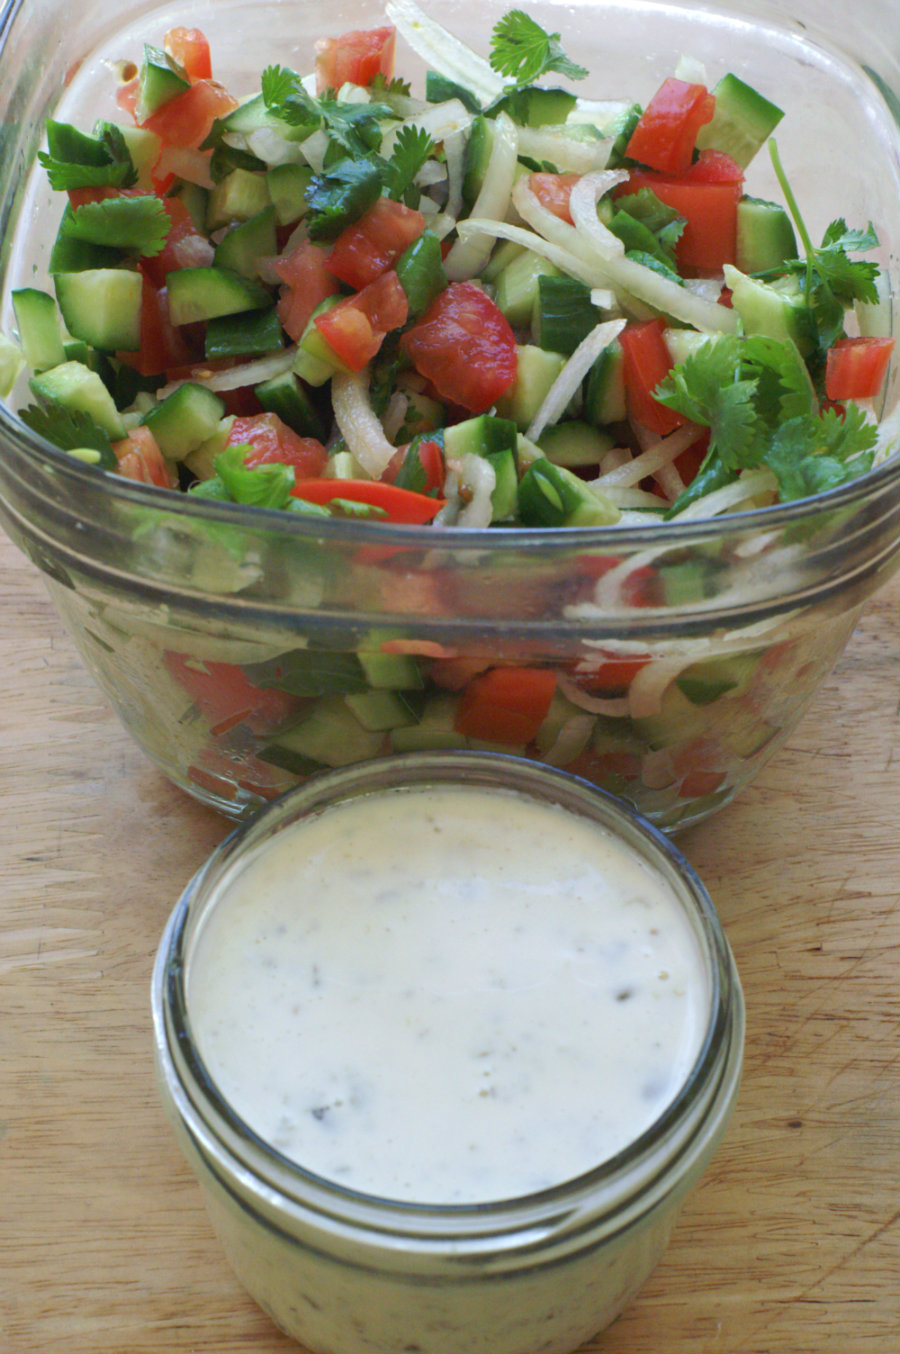 Cucumber and Tomato salad with Low Calorie Dressing